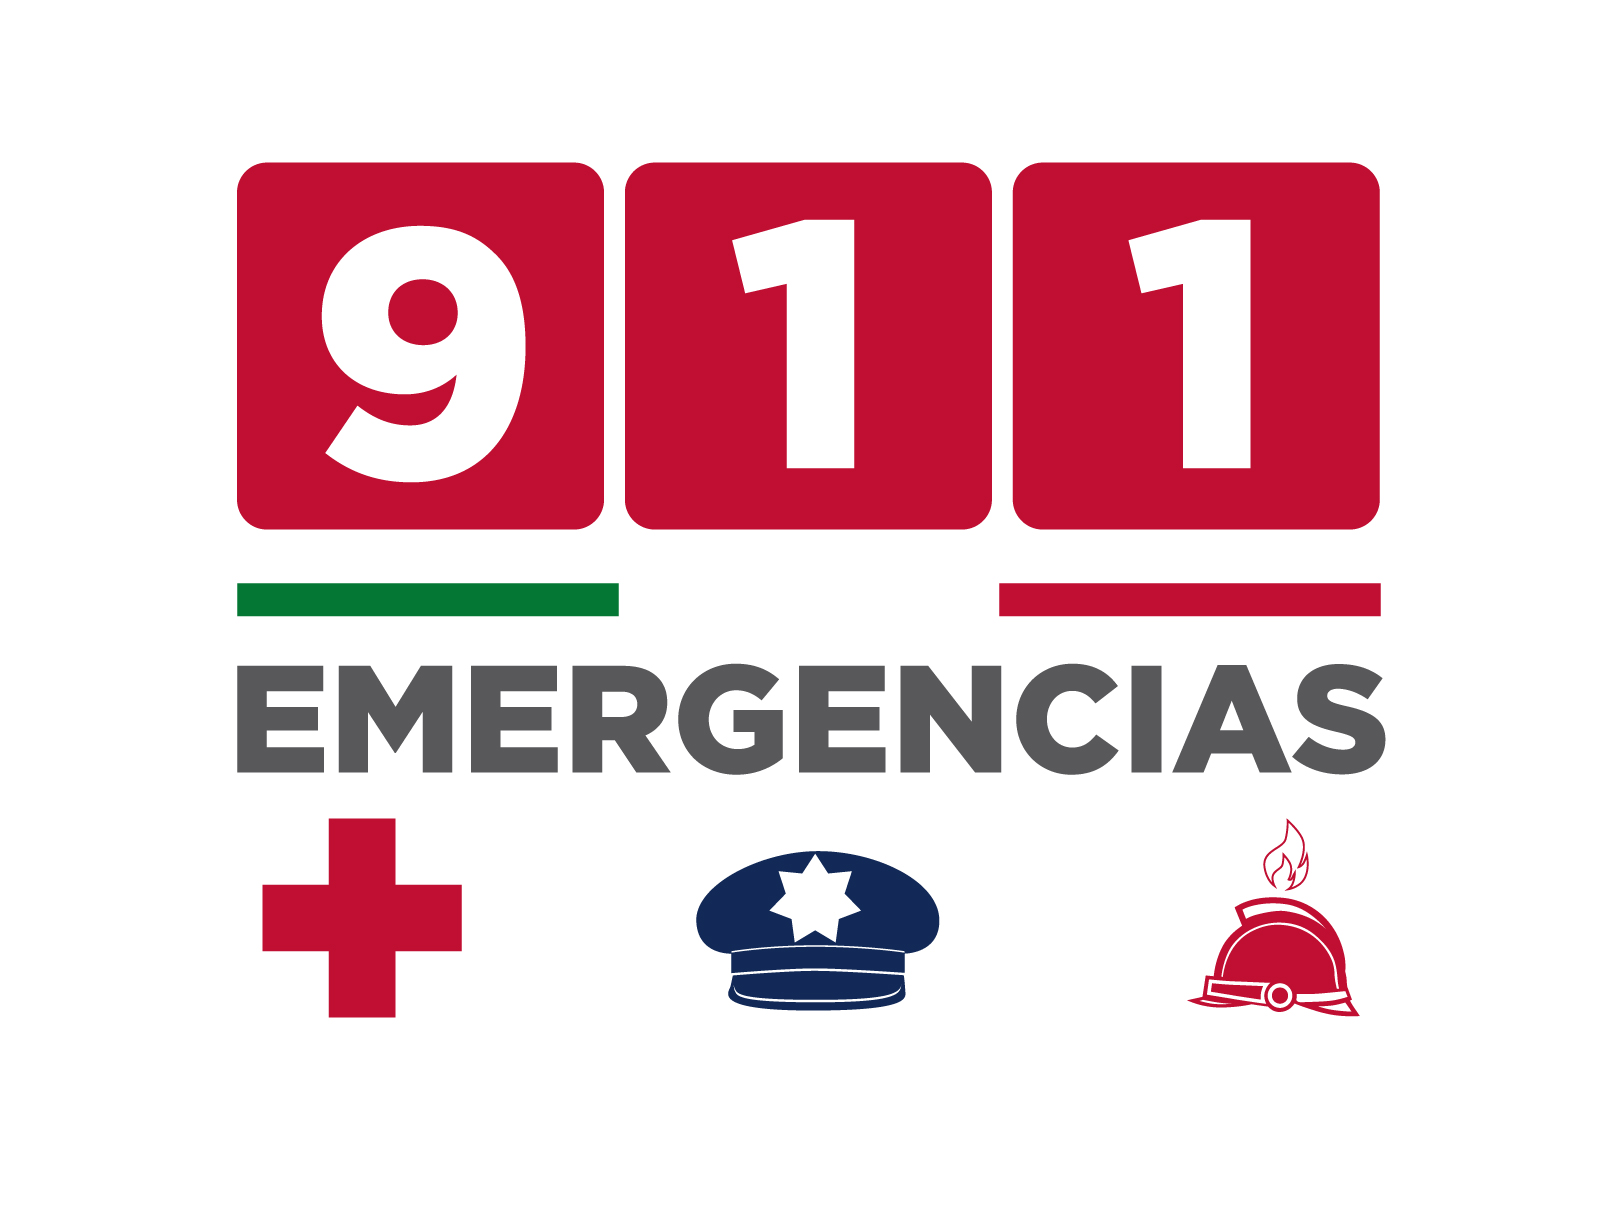 Mexico Implements 911 Emergency Number | KJZZ